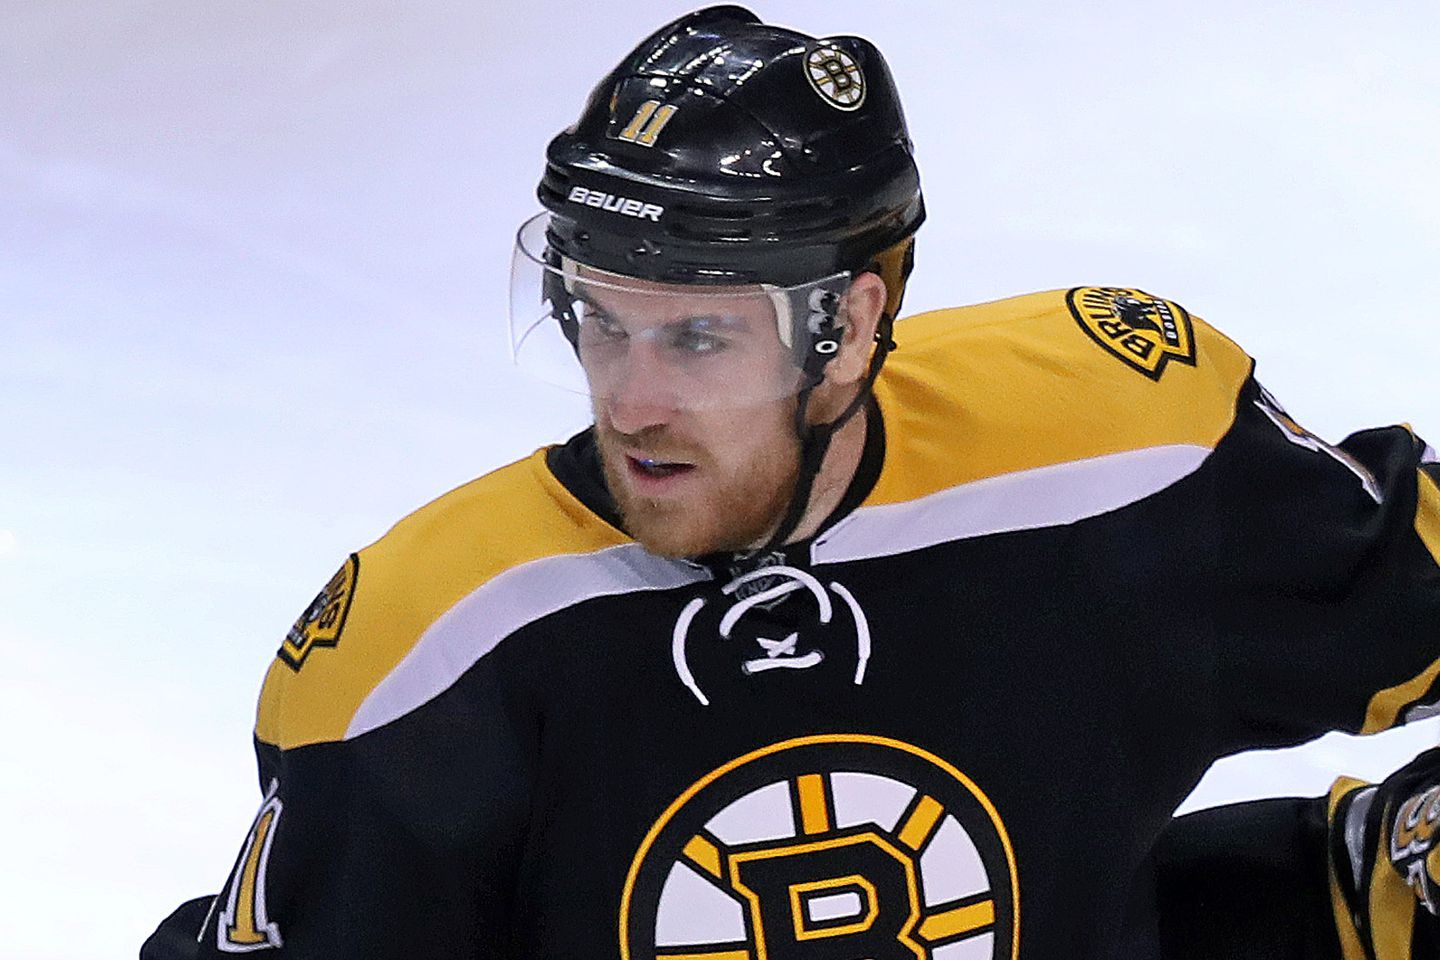 What Happened To Jimmy Hayes